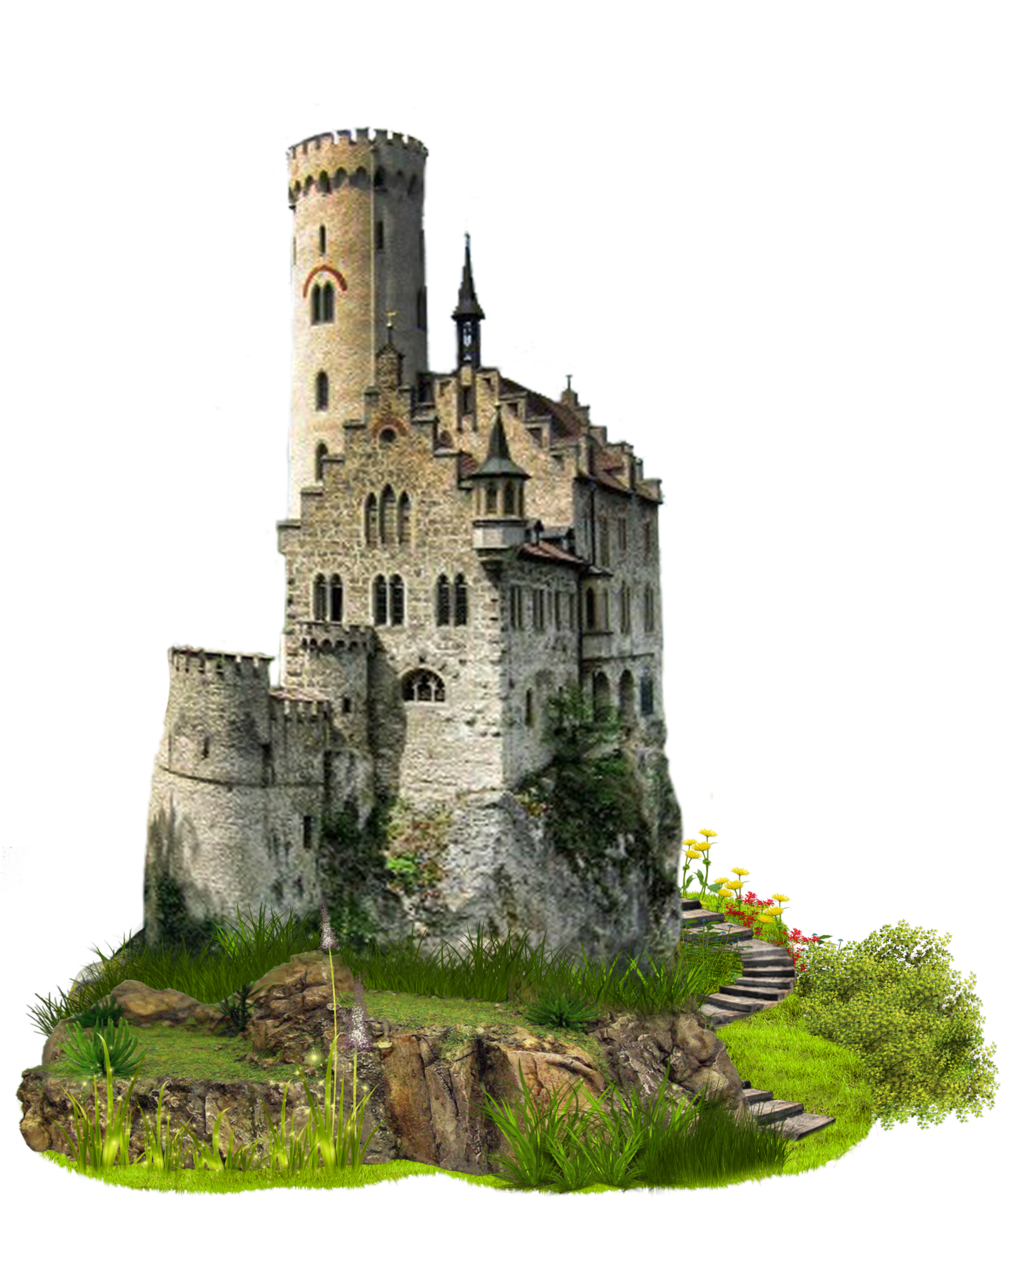 clip transparent Castle clipart edinburgh castle. Png transparent images pluspng.